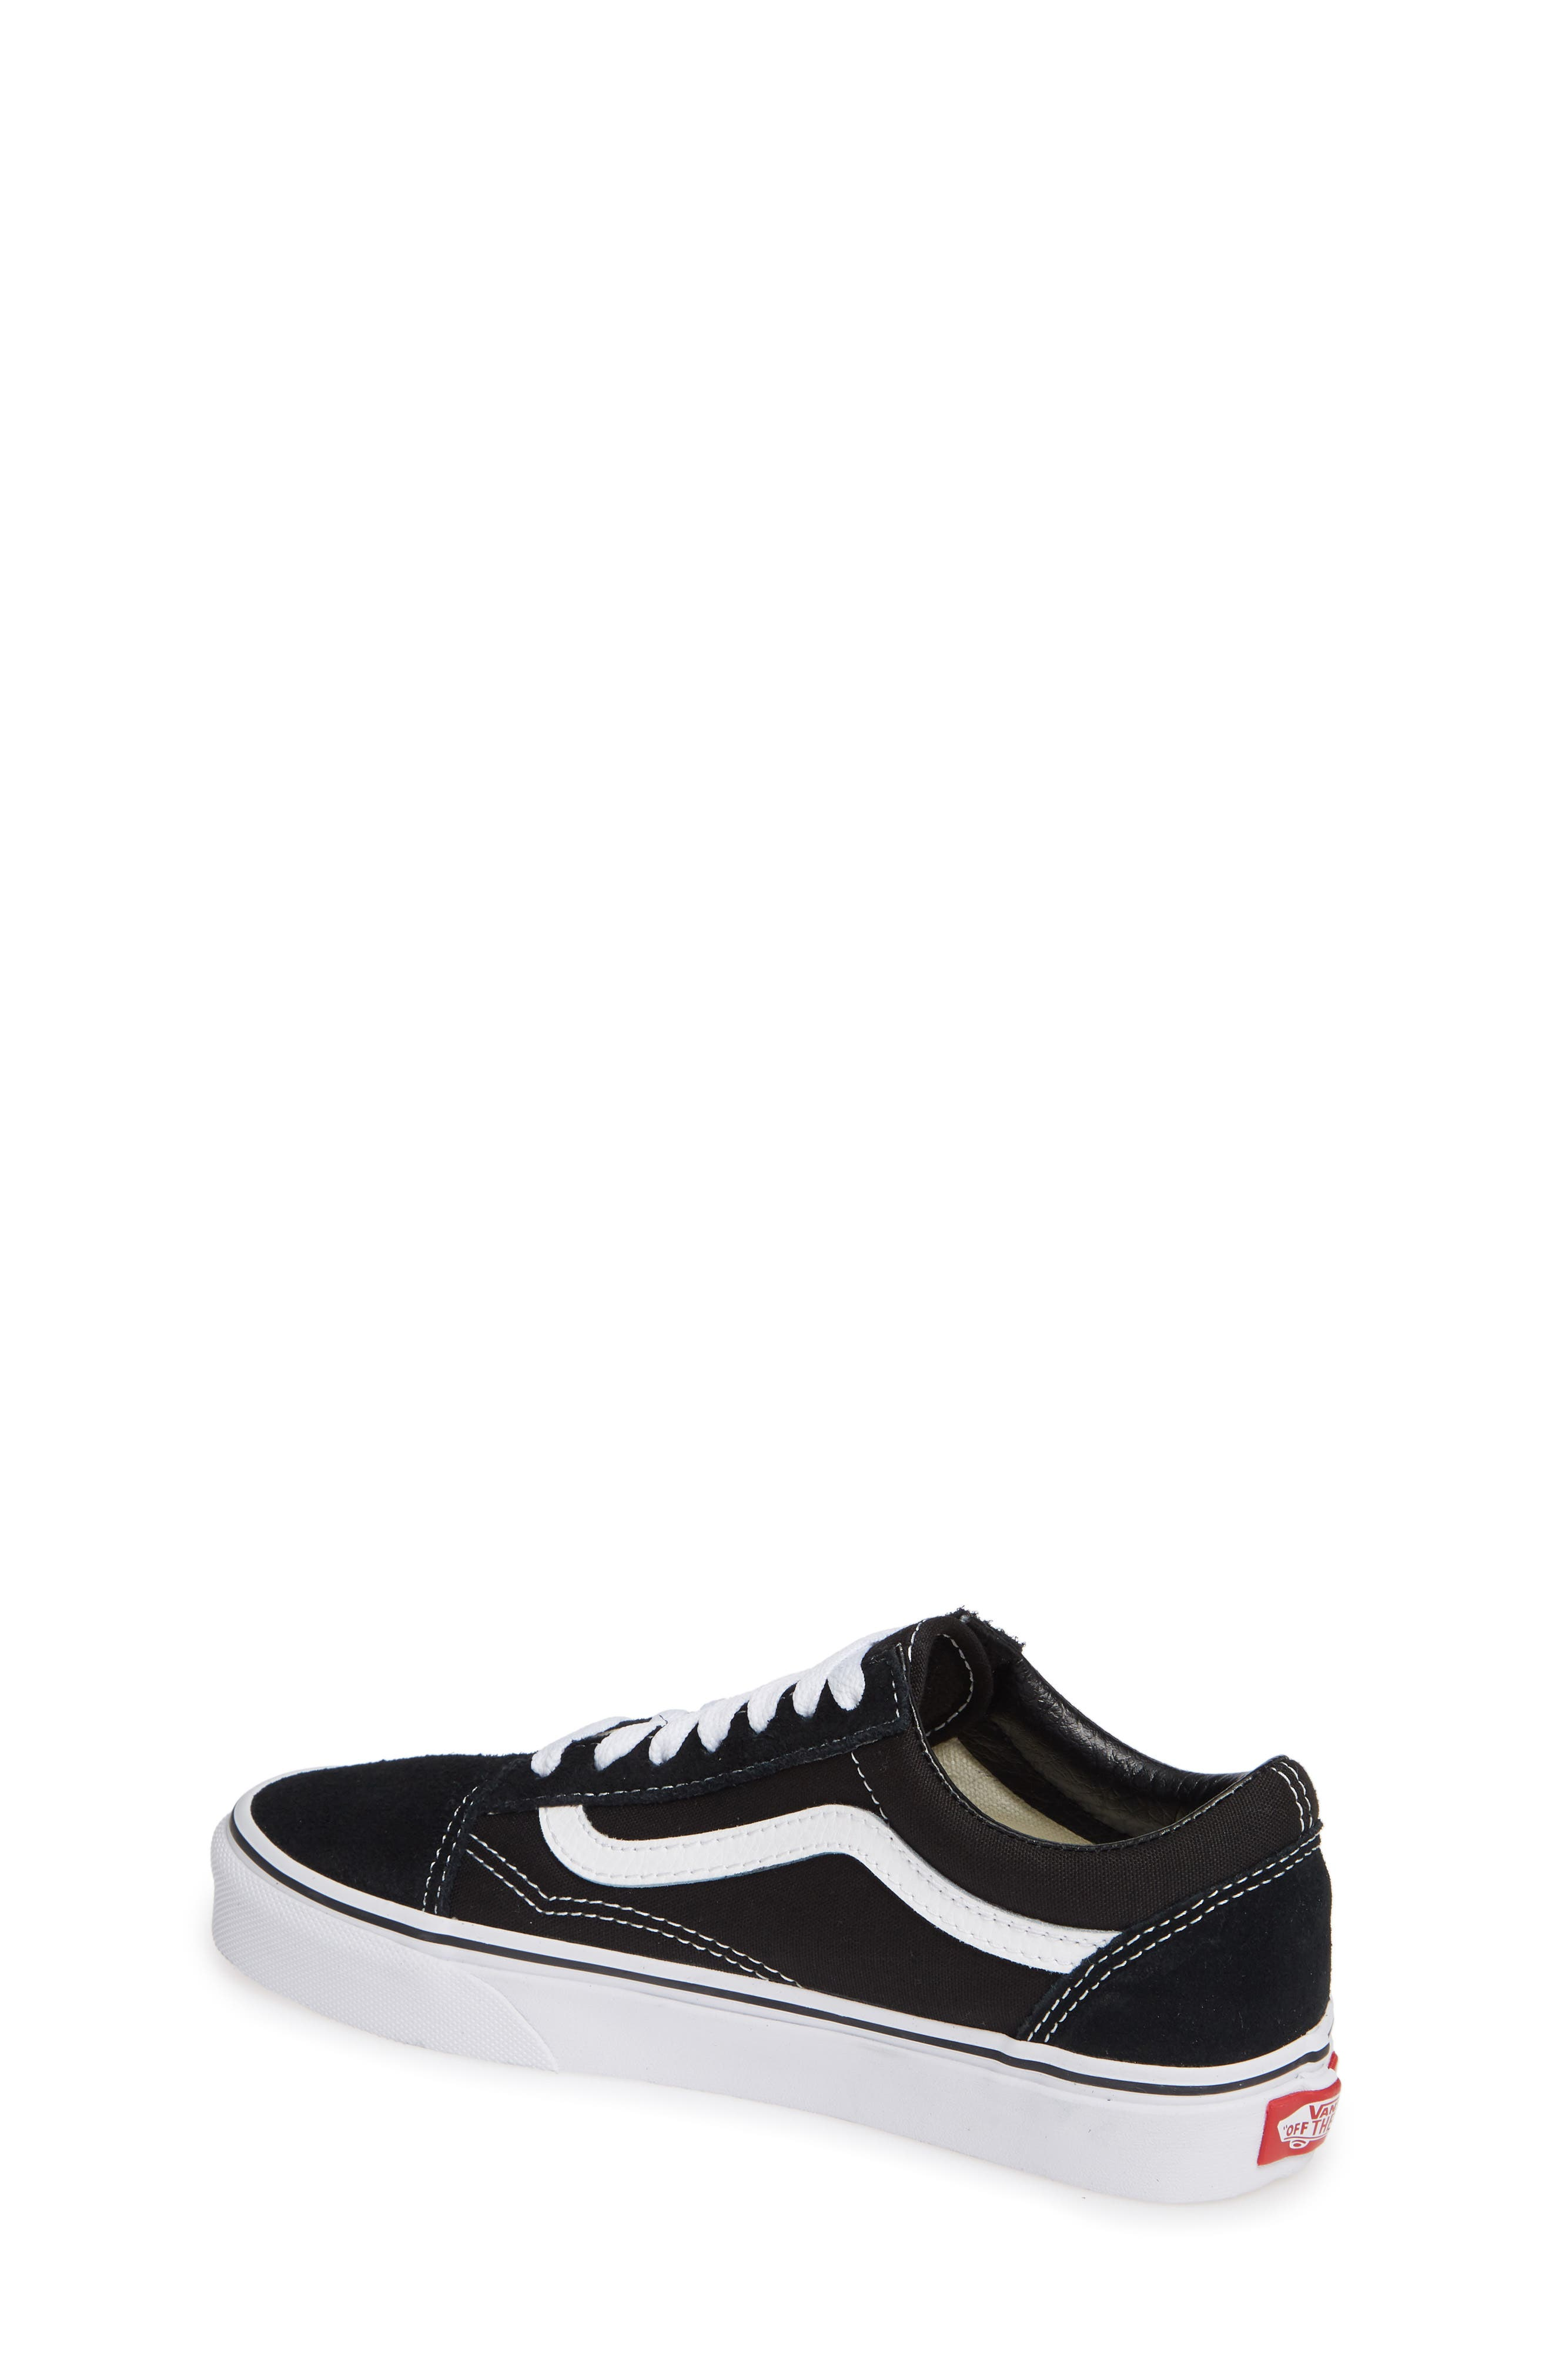 VANS, 'Old Skool' Skate Sneaker, Alternate thumbnail 2, color, BLACK/ WHITE SUEDE CANVAS